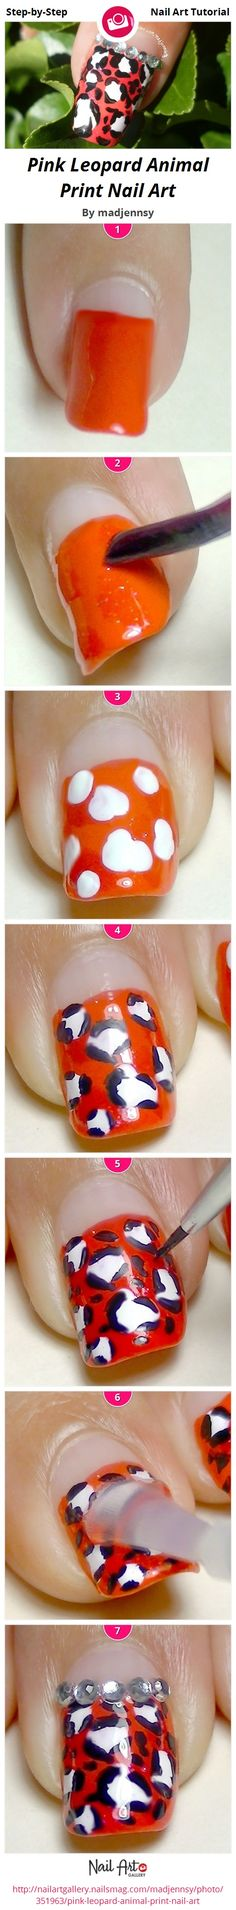 Pink Leopard Animal Print Nail Art by madjennsy from Nail Art Gallery